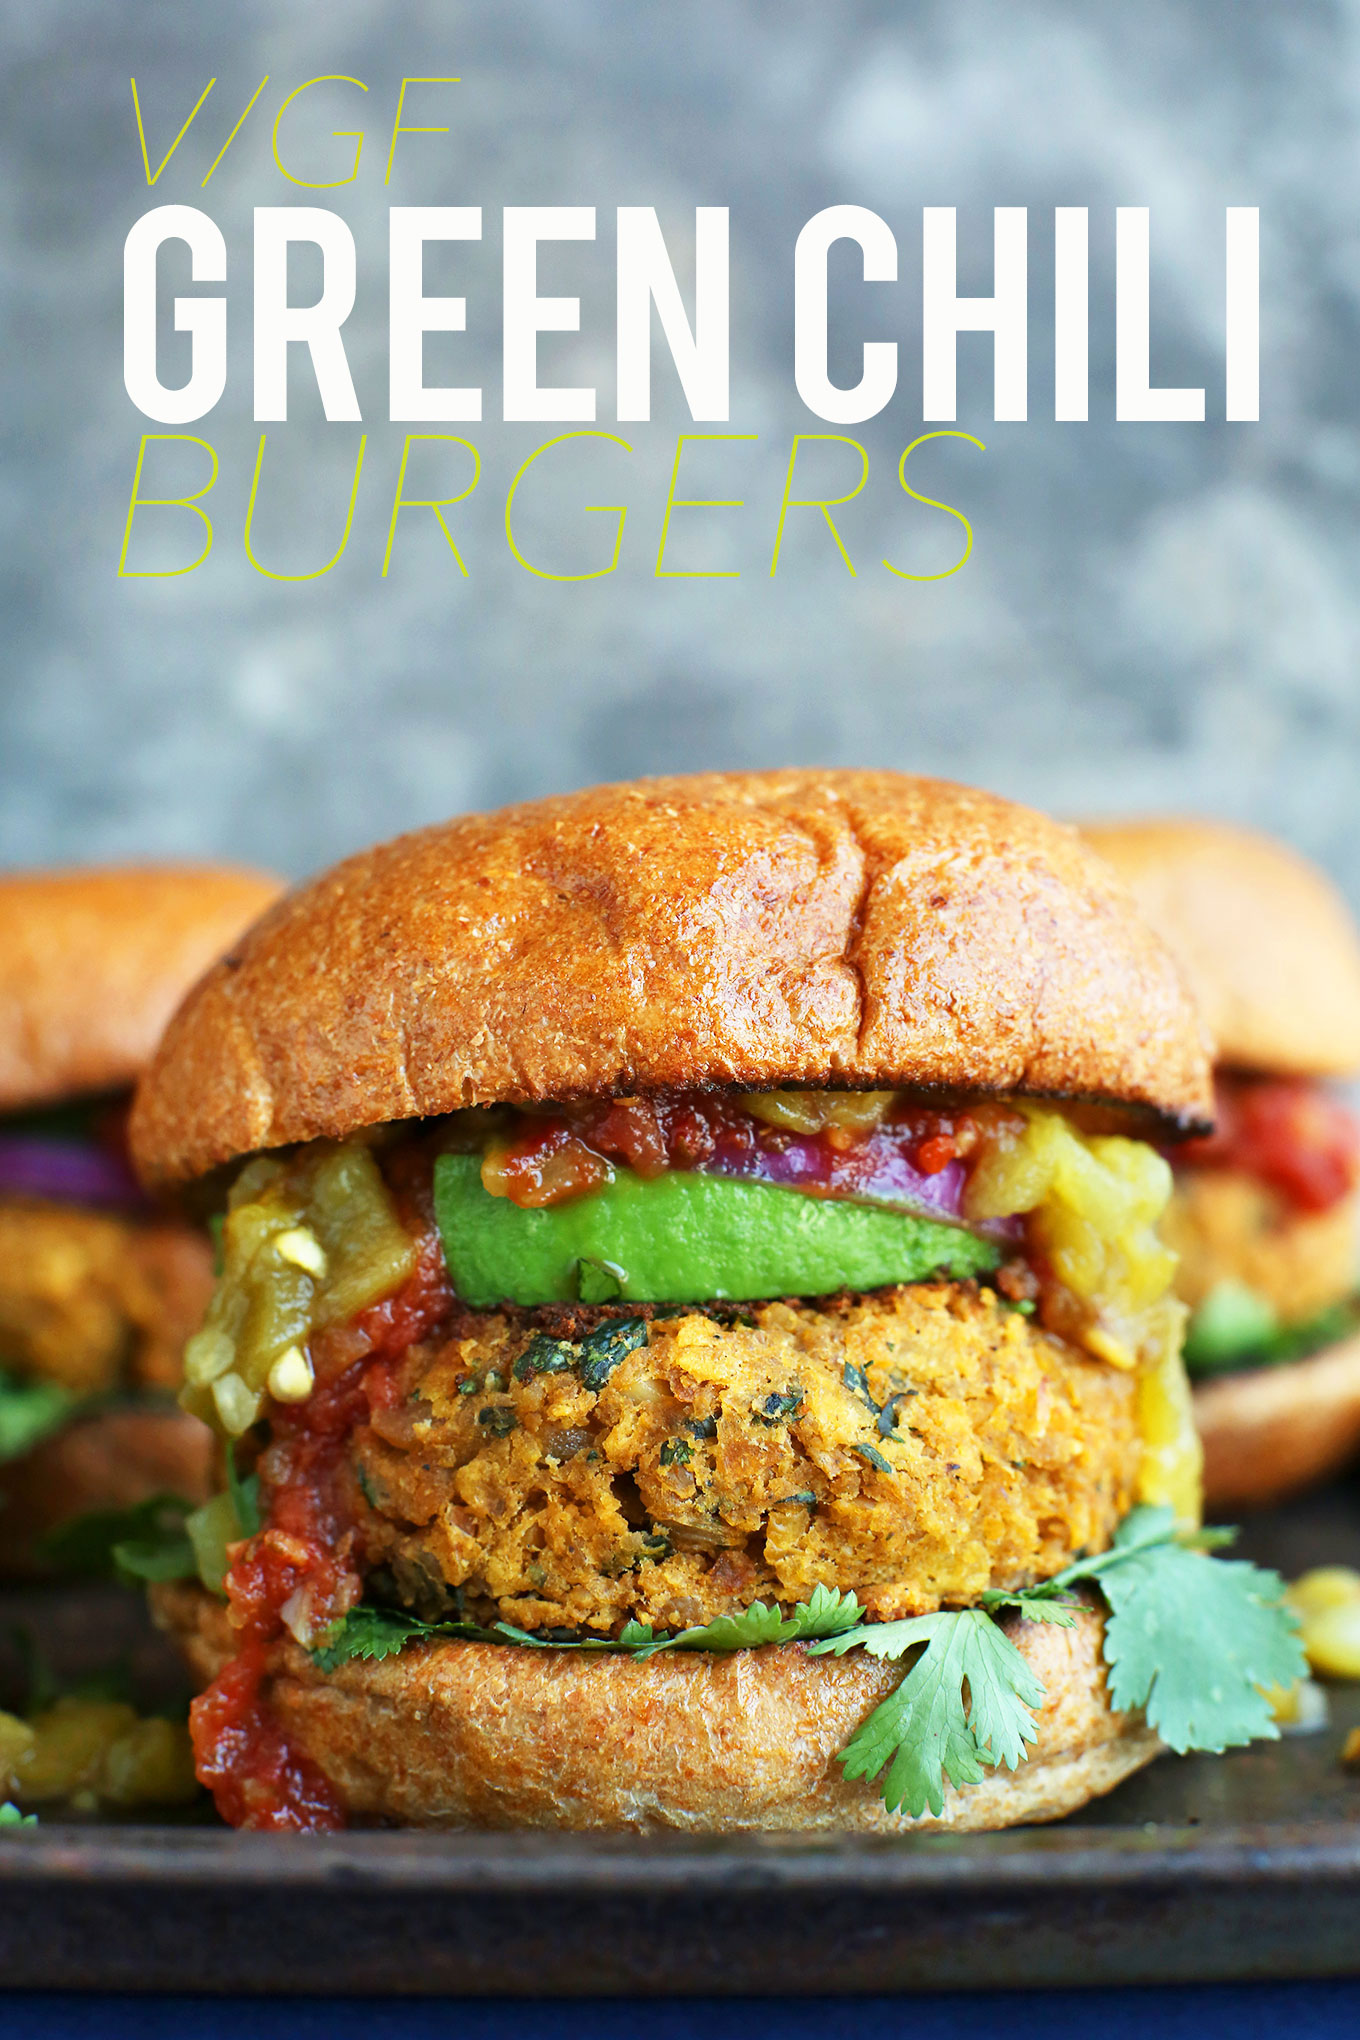 Green Chili Veggie Burger with toppings on a bun for a gluten-free vegan dinner